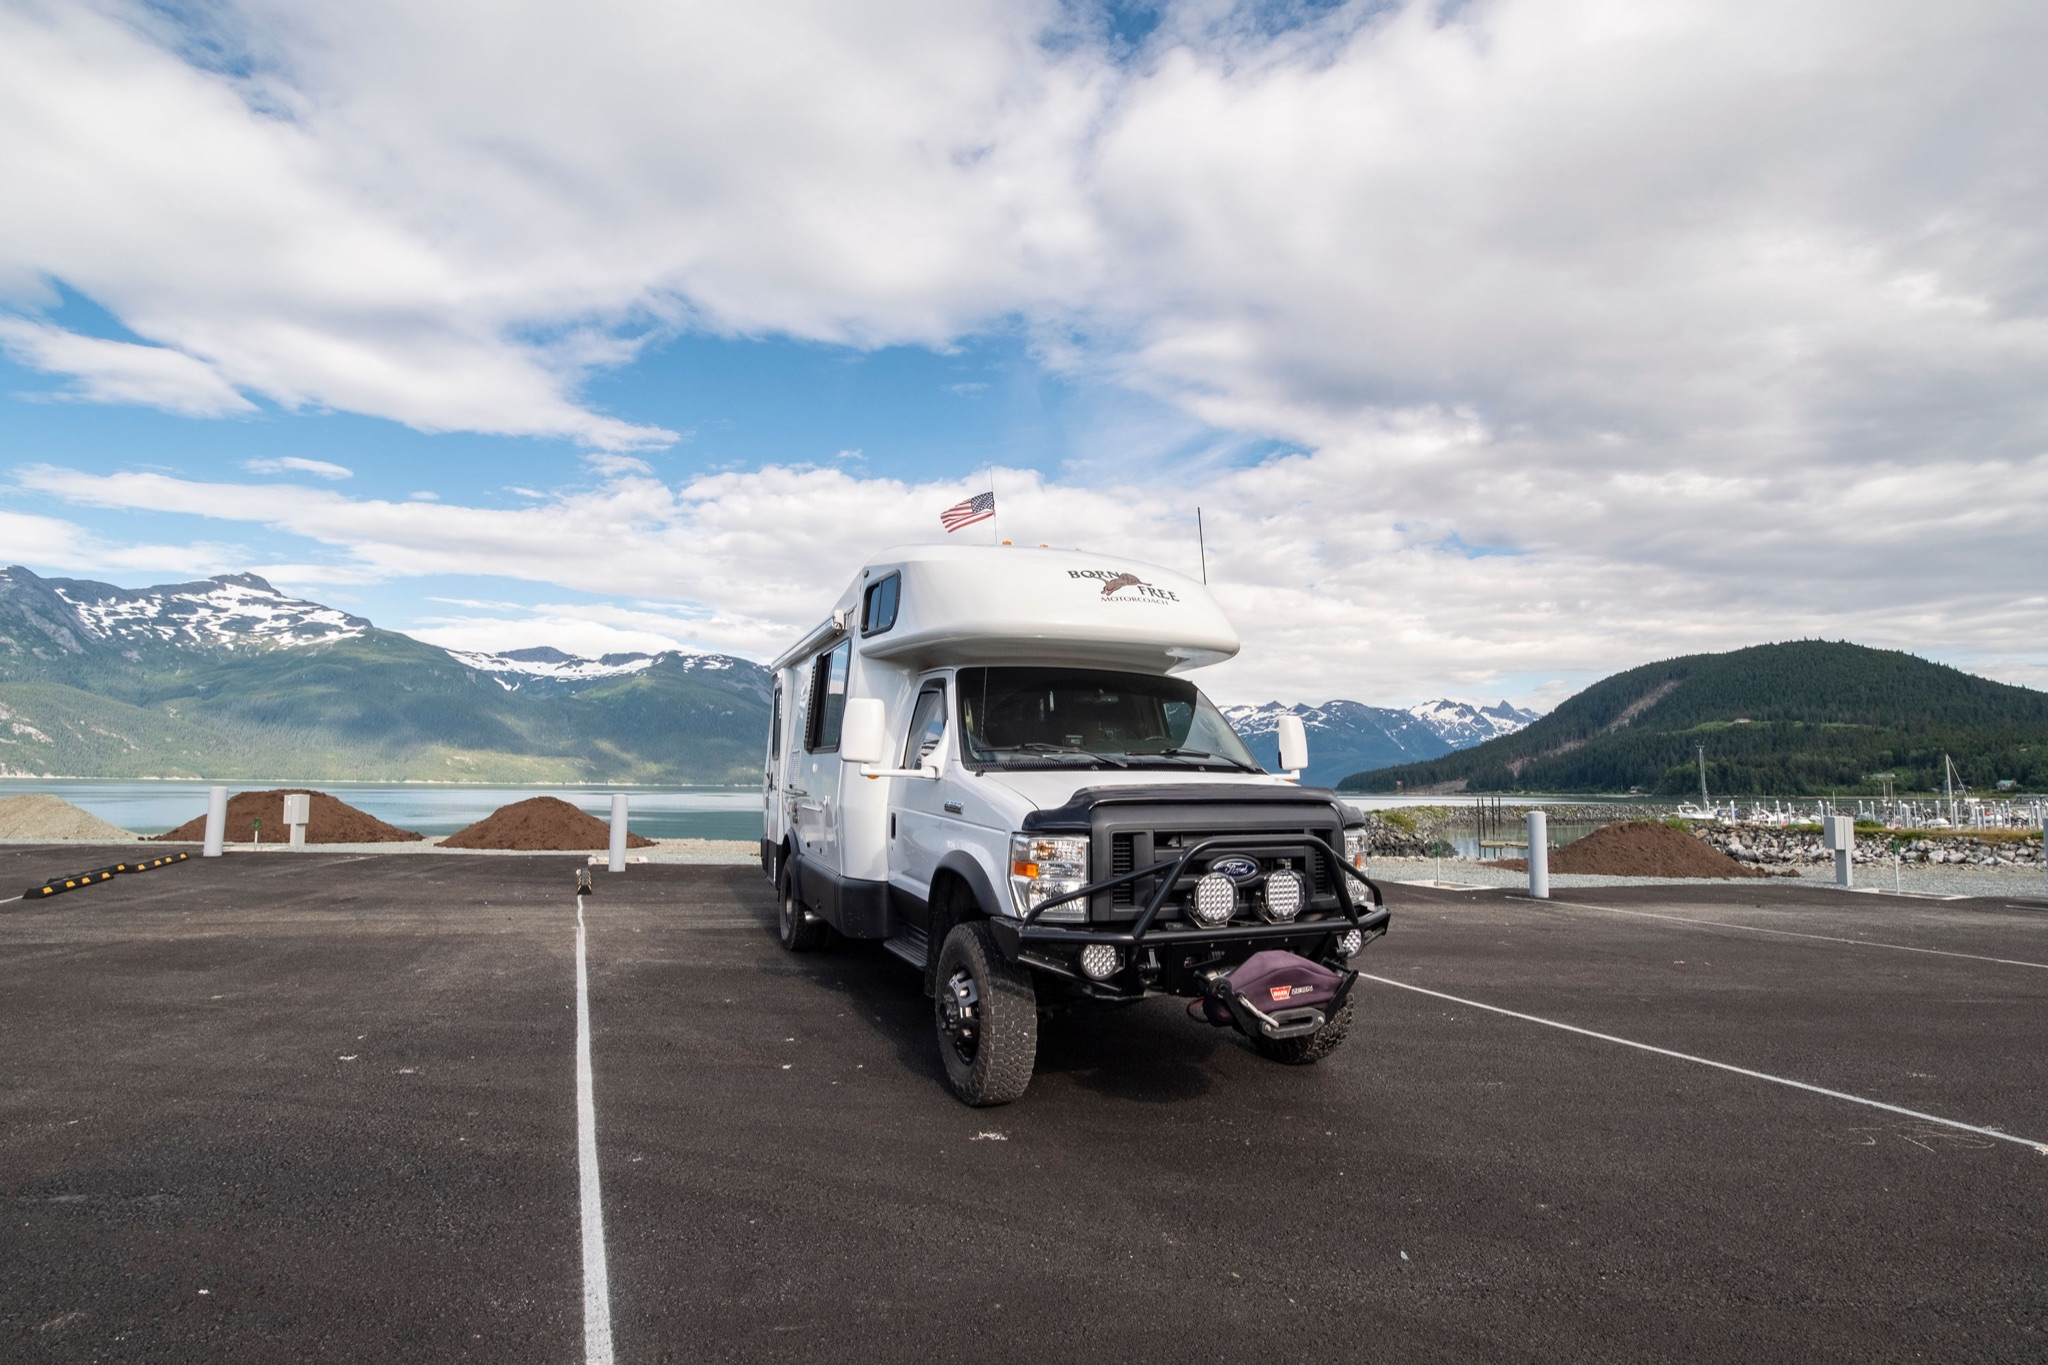 RV van parked in parking lot in front of mountains and lake.